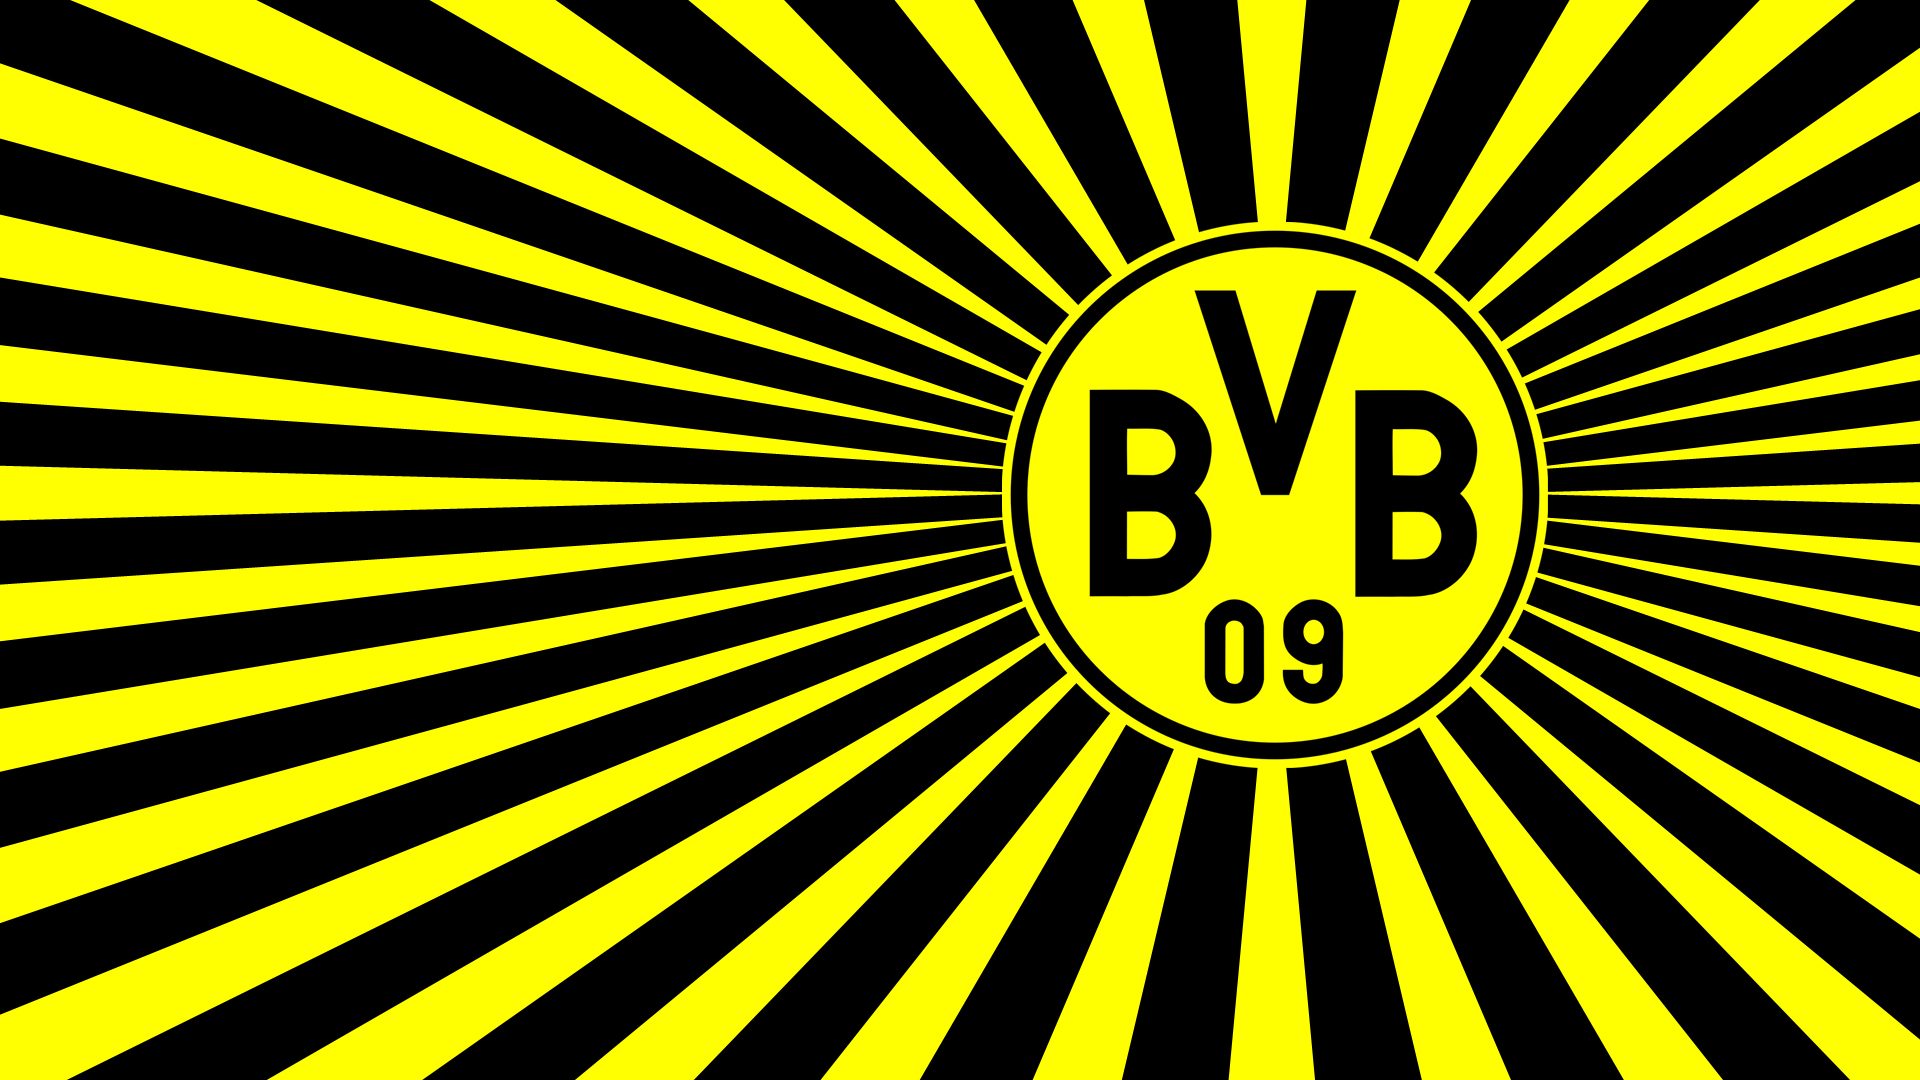 Borussia Dortmund Wallpaper Screensaver 2015